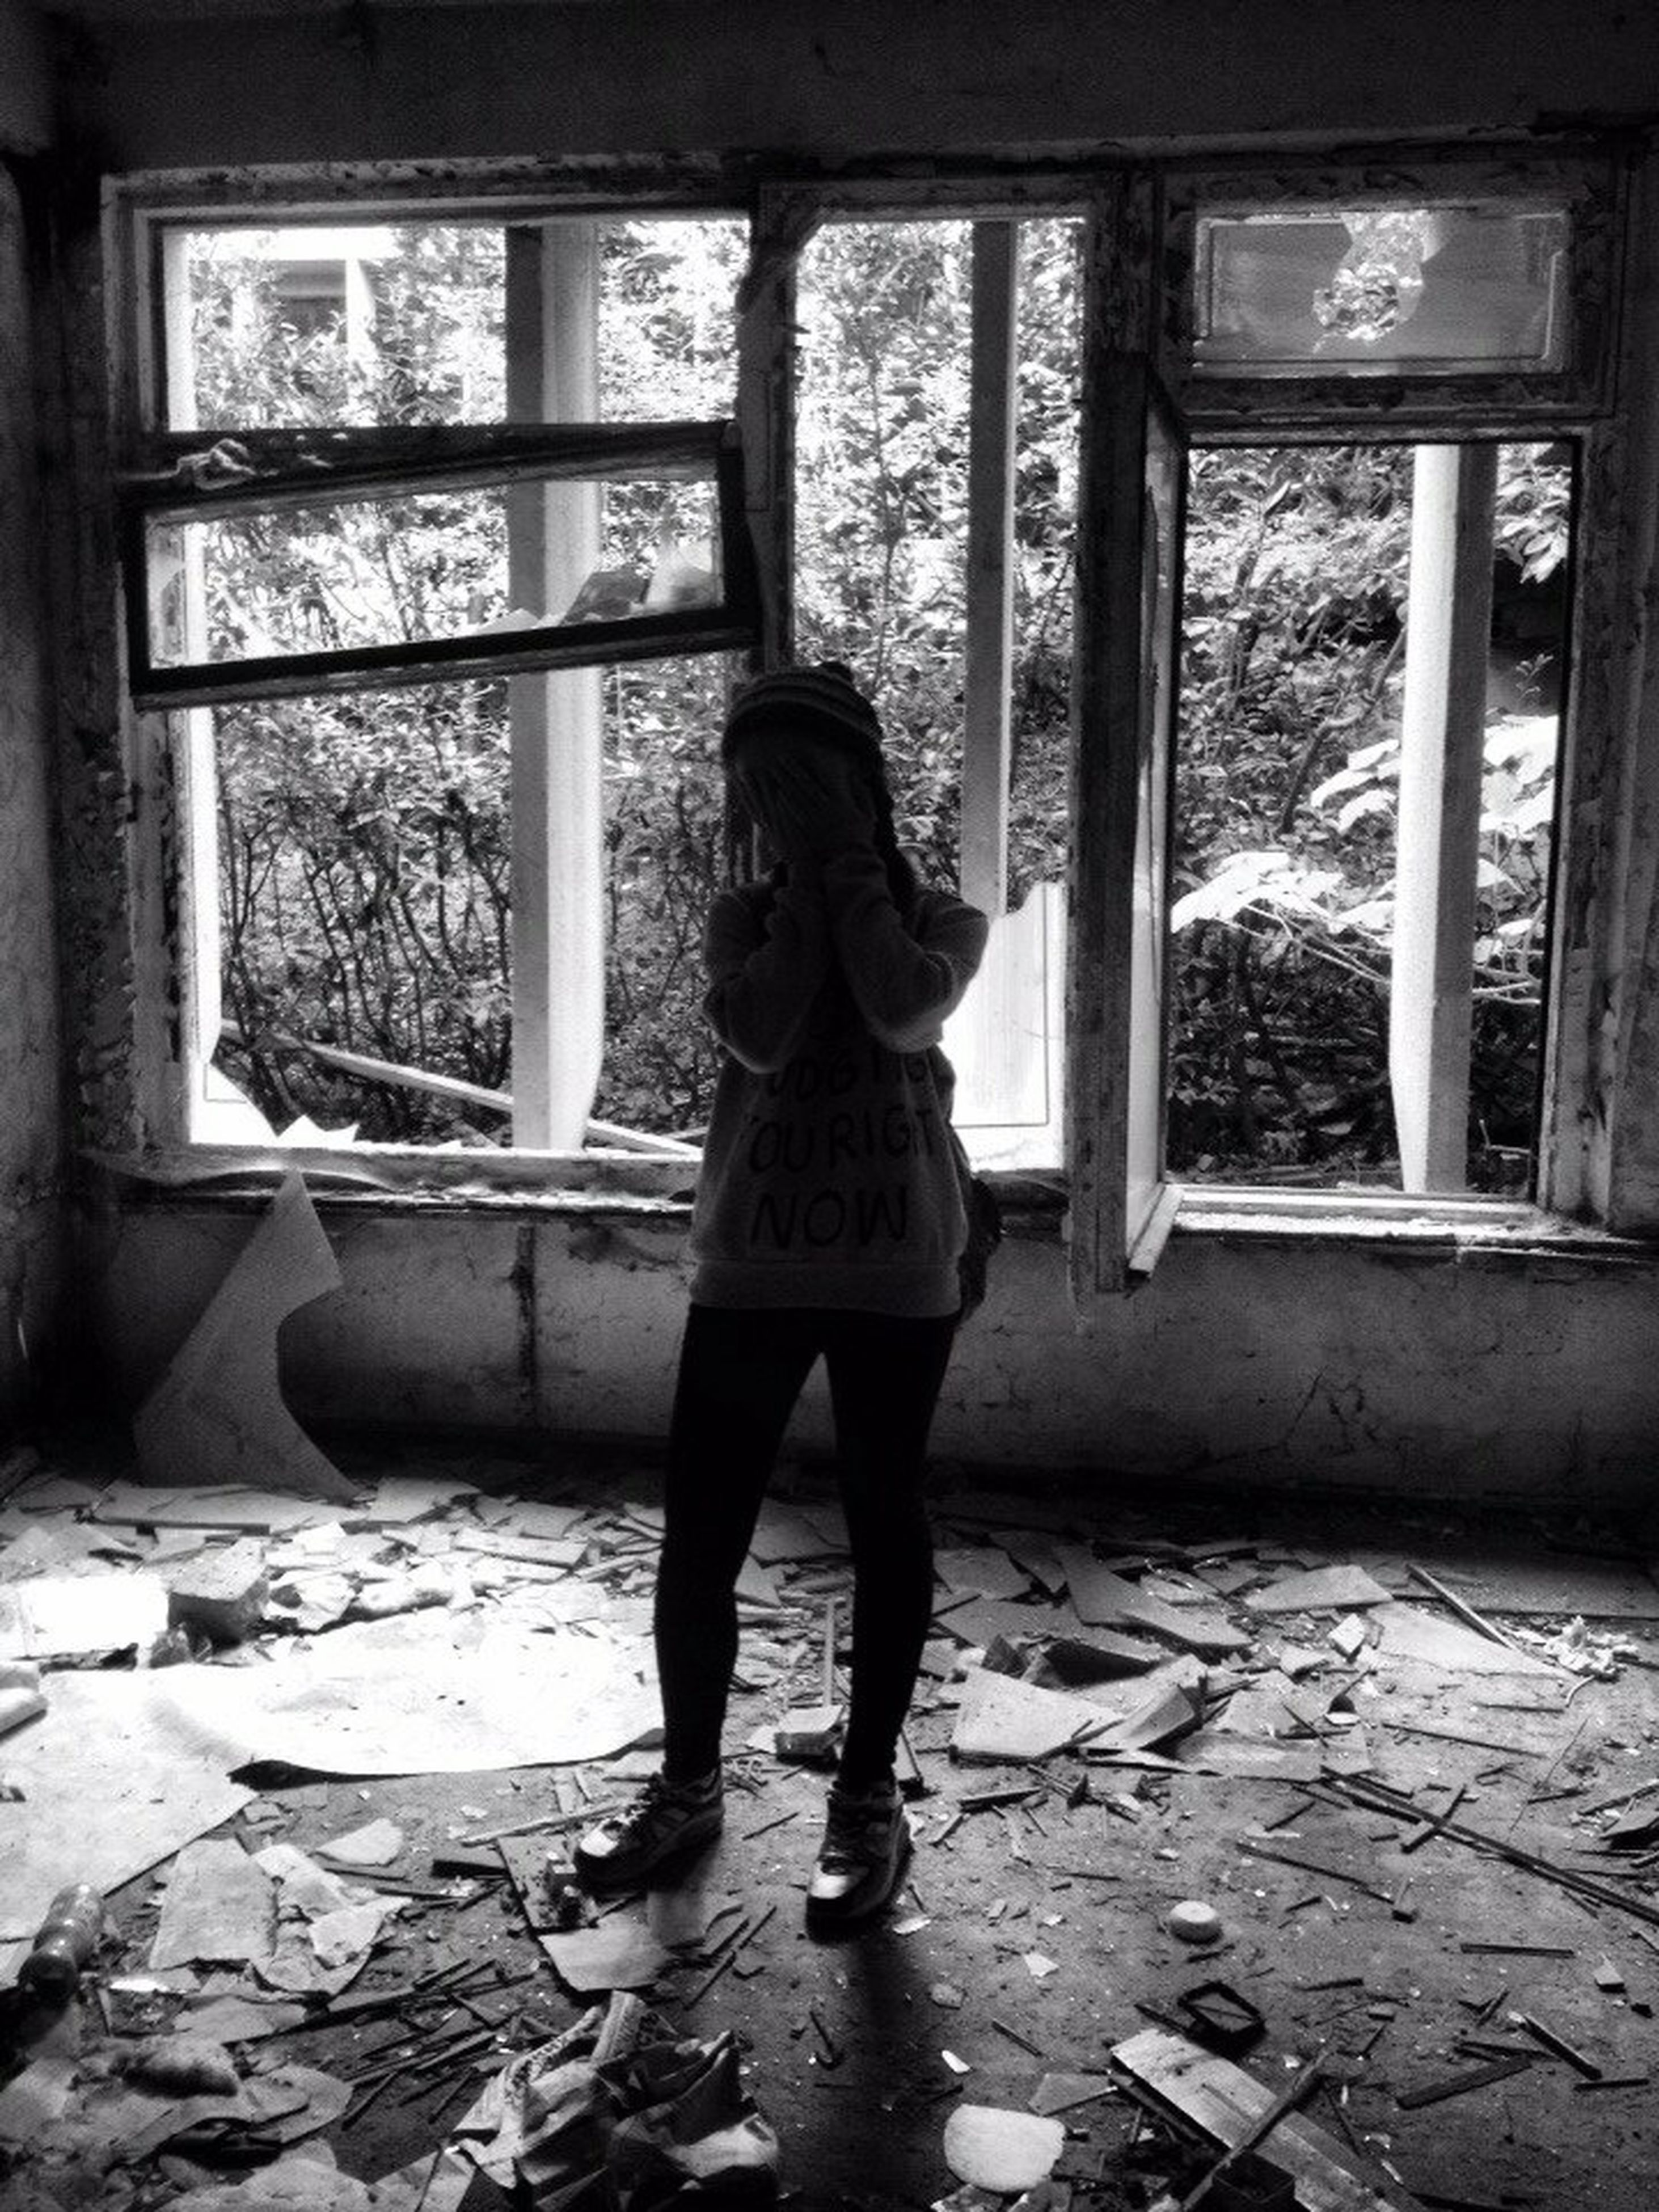 window, indoors, abandoned, full length, standing, built structure, architecture, lifestyles, house, day, damaged, obsolete, casual clothing, old, glass - material, leisure activity, door, weathered